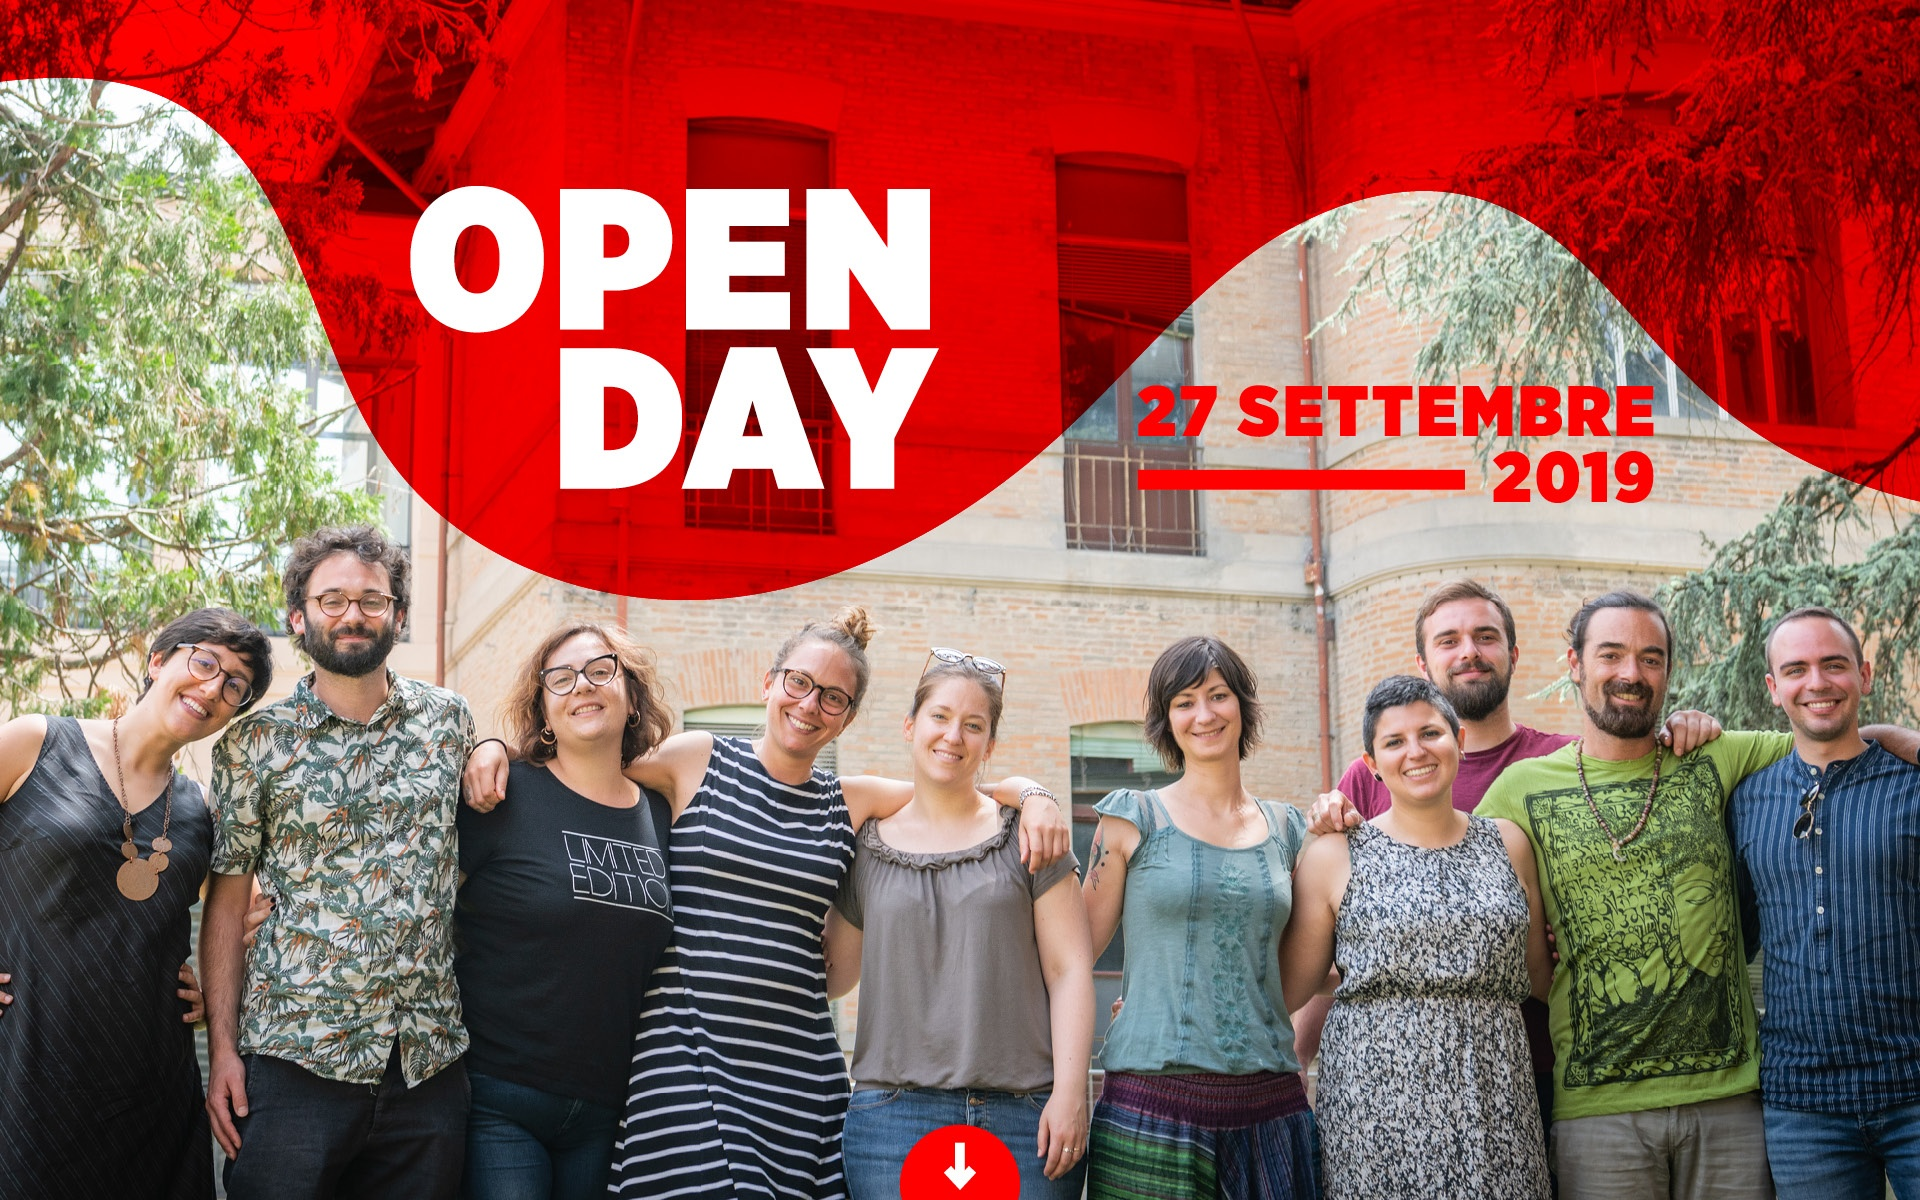 Slider Openday 27settembre Defff